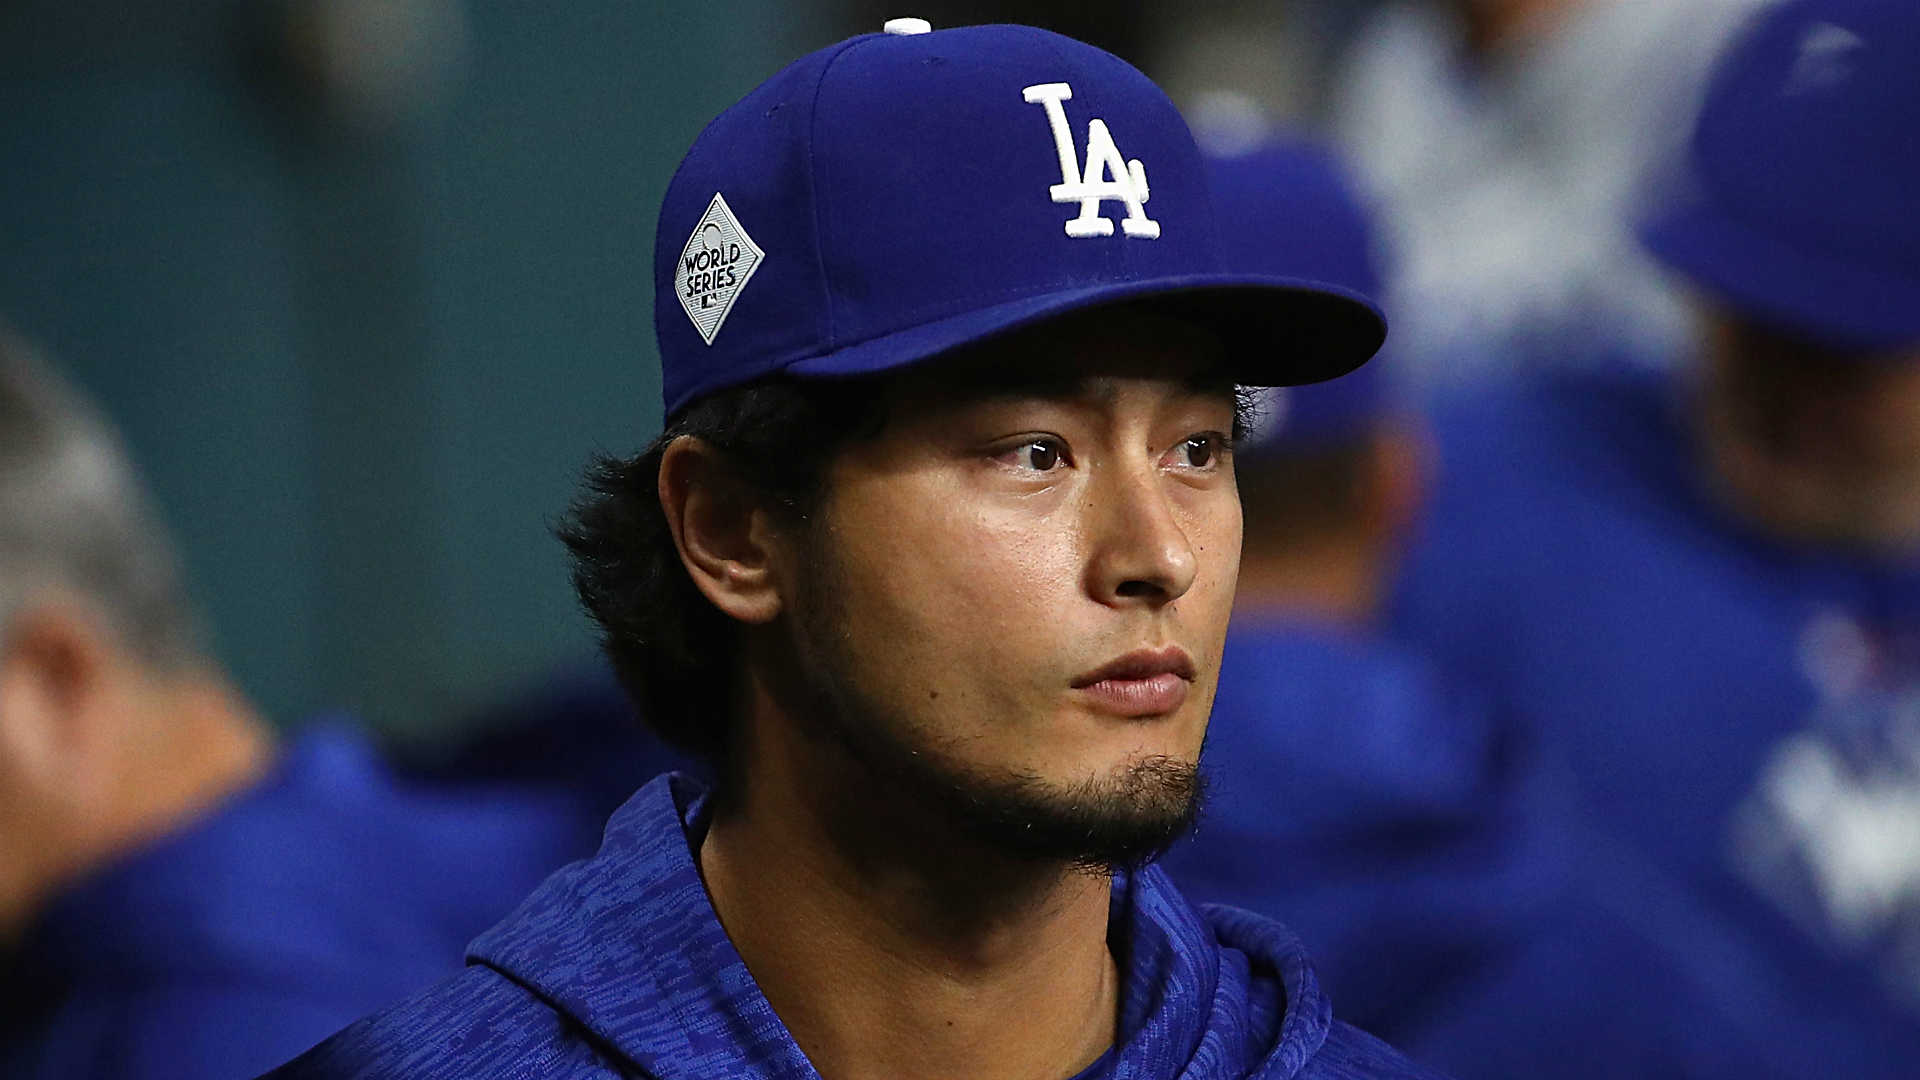 Cubs sign Darvish to six-year, $126M deal